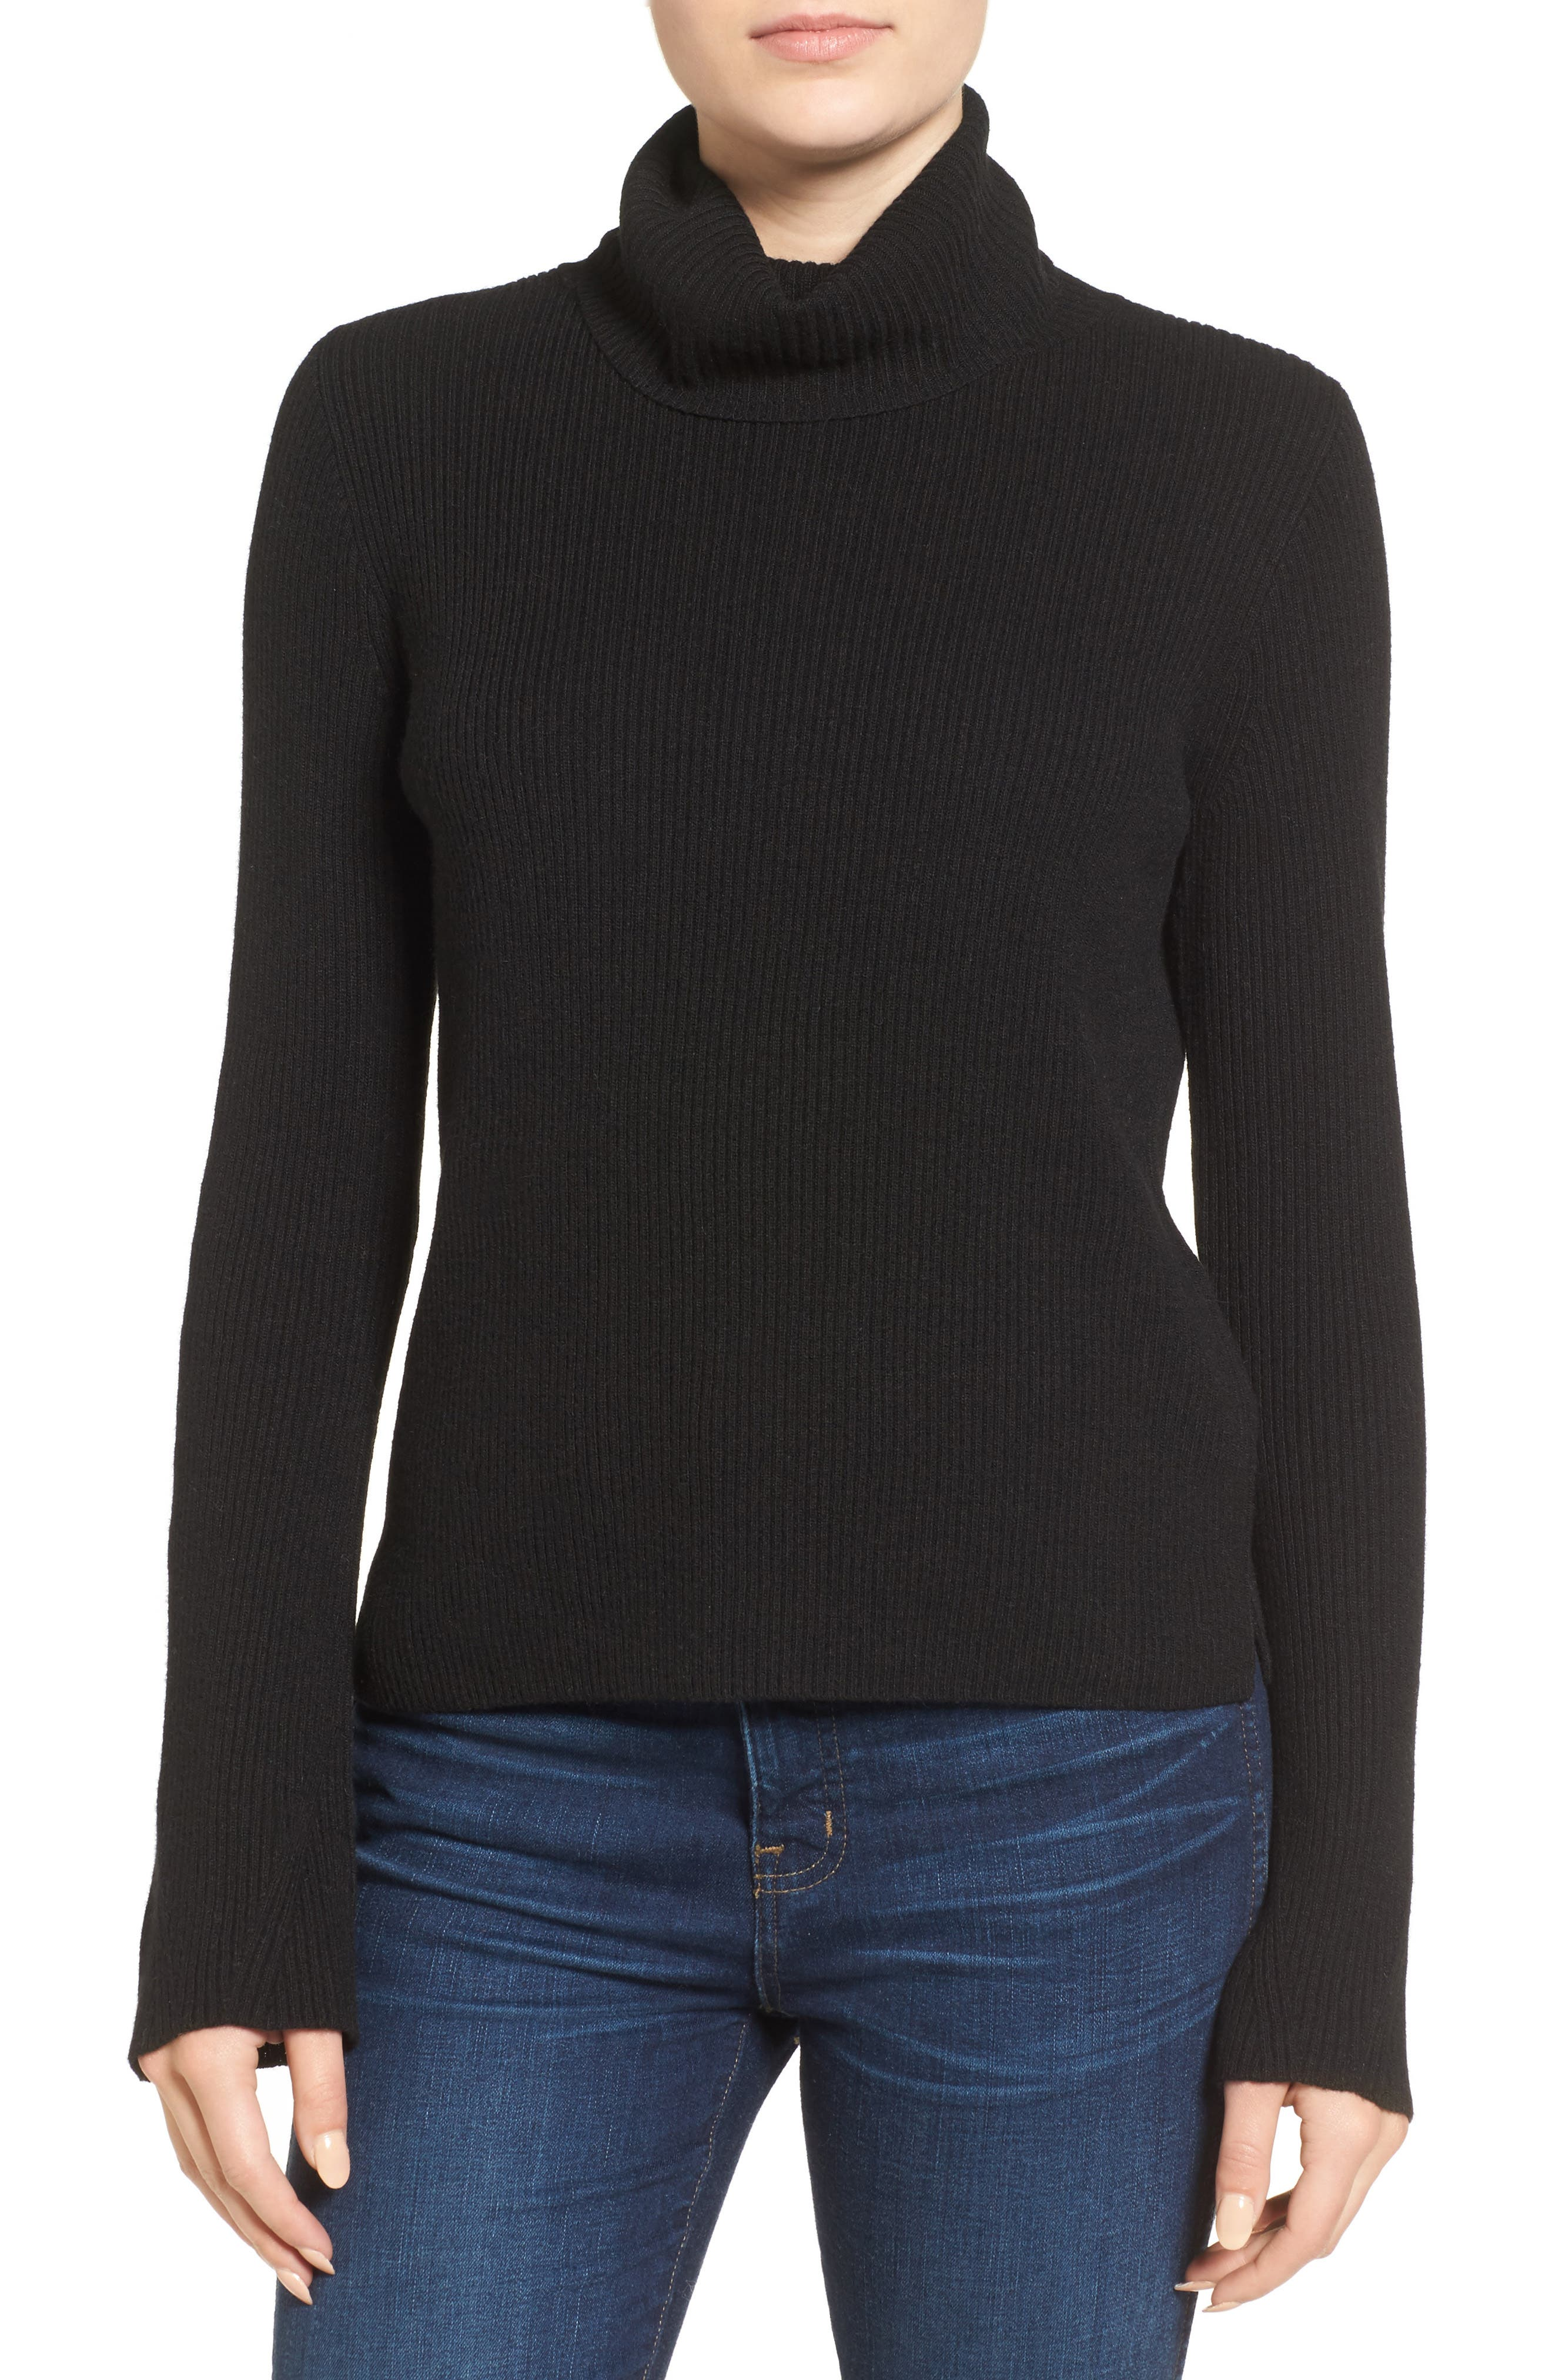 MADEWELL Turtleneck Sweater, Main, color, 001